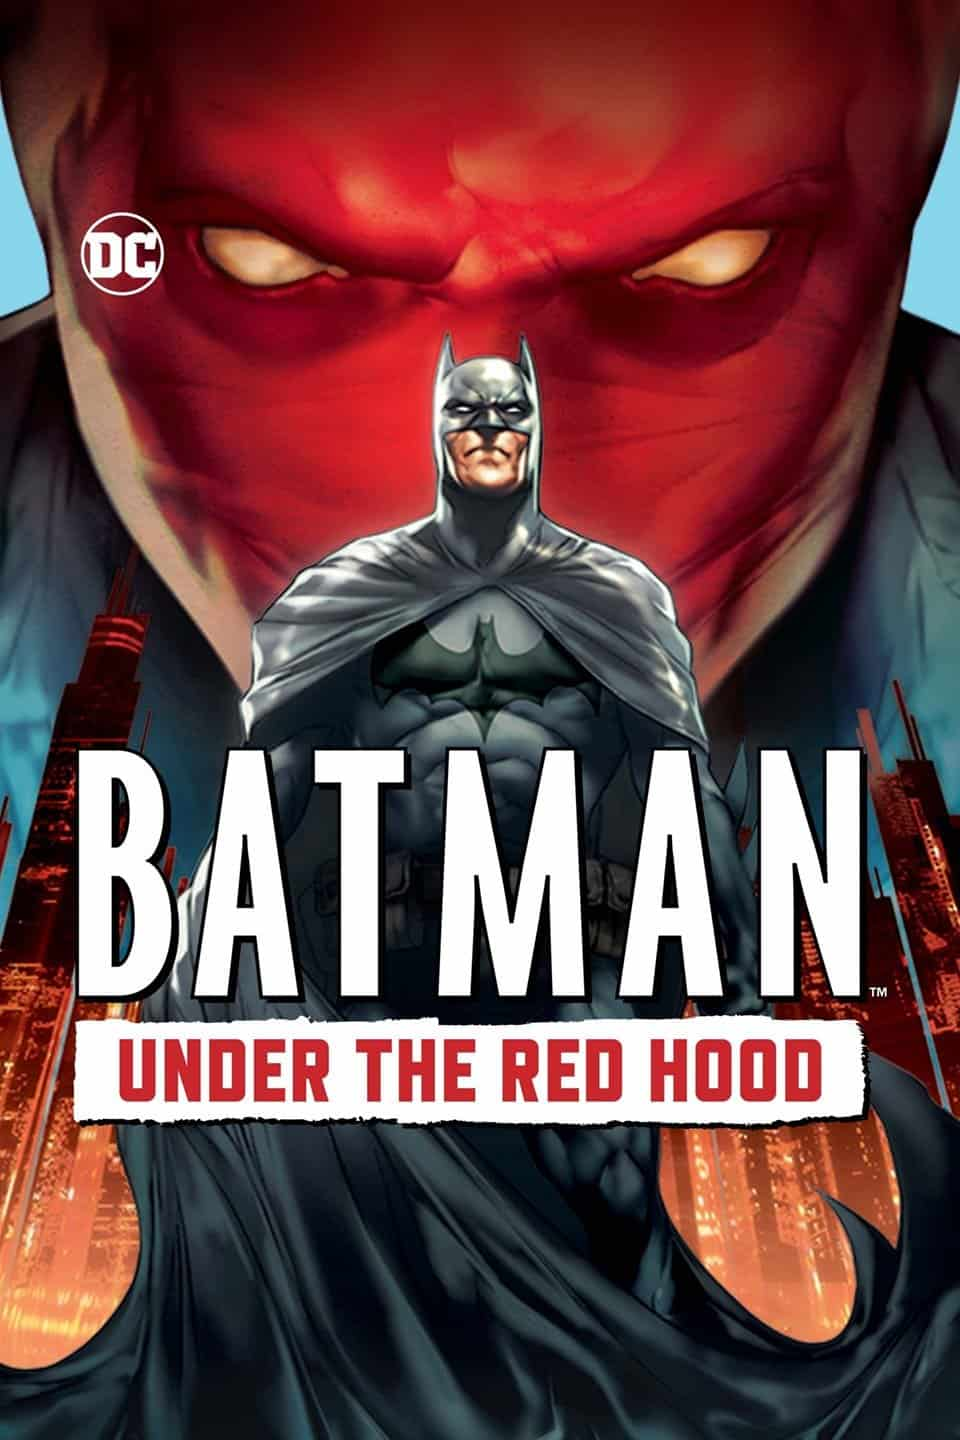 Batman: Under the Red Hood, 2010